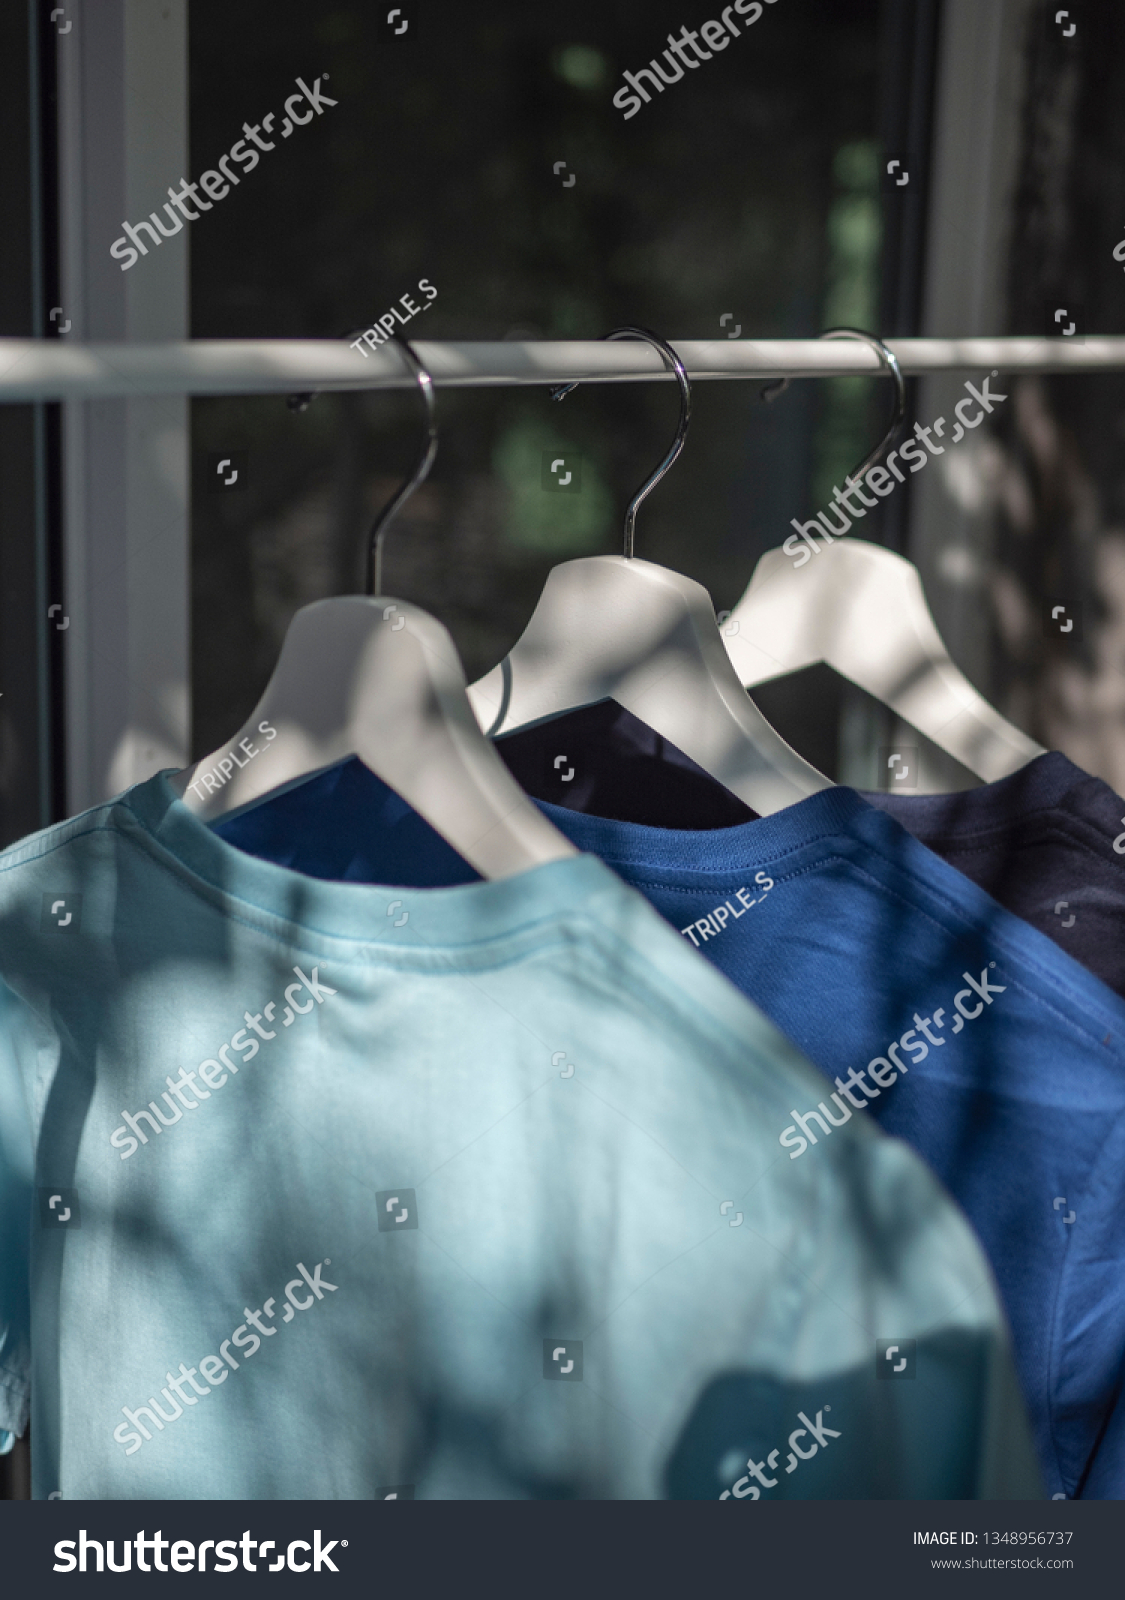 Blue and navy blue t-shirts on hangers, close up view  #1348956737